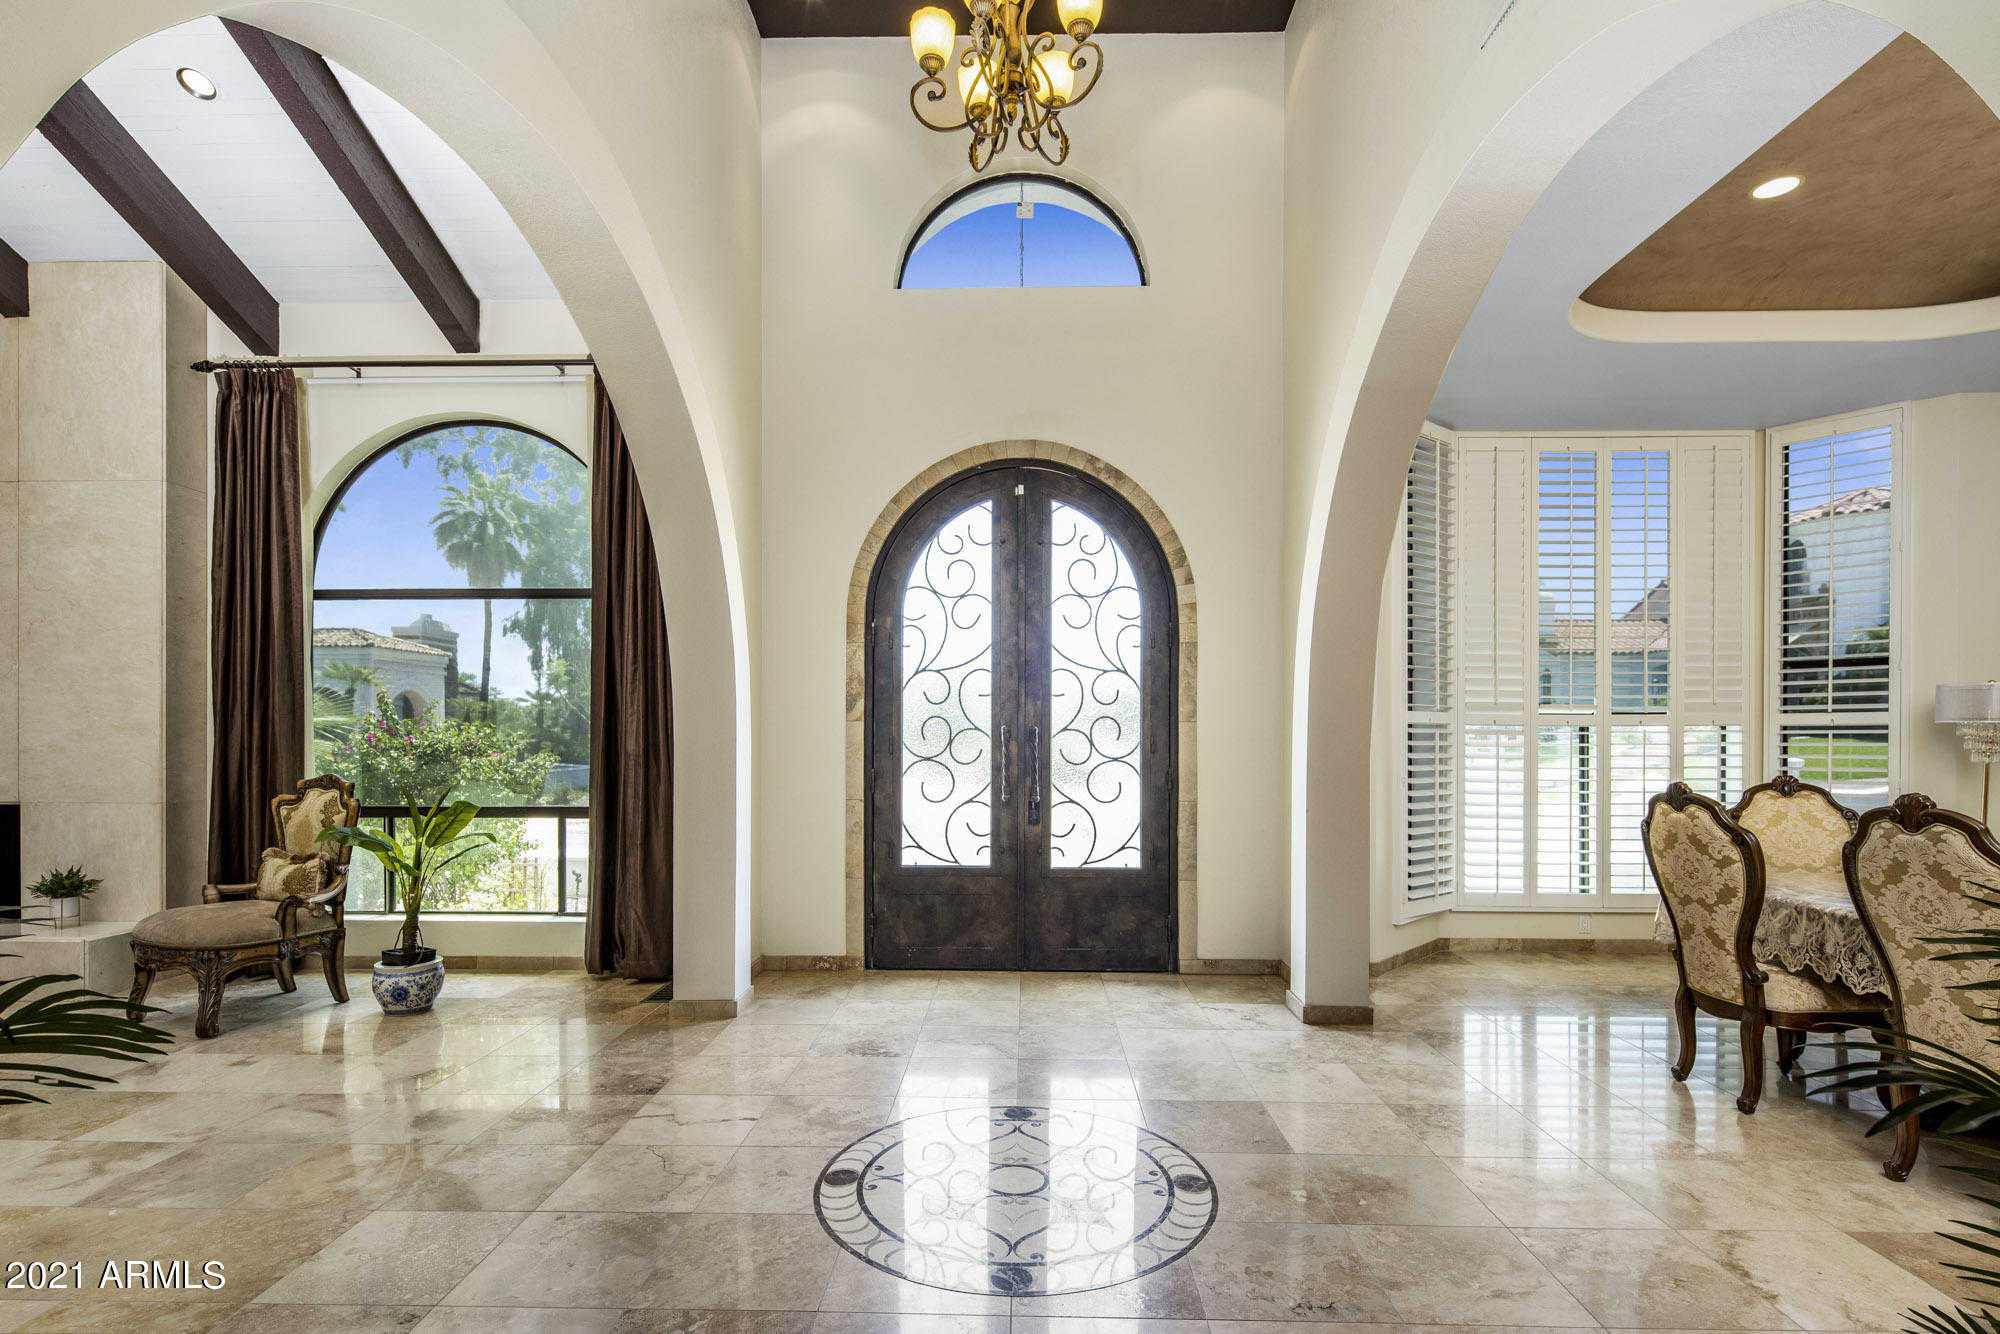 $2,500,000 - 4Br/6Ba - Home for Sale in Phoenician Estates, Paradise Valley